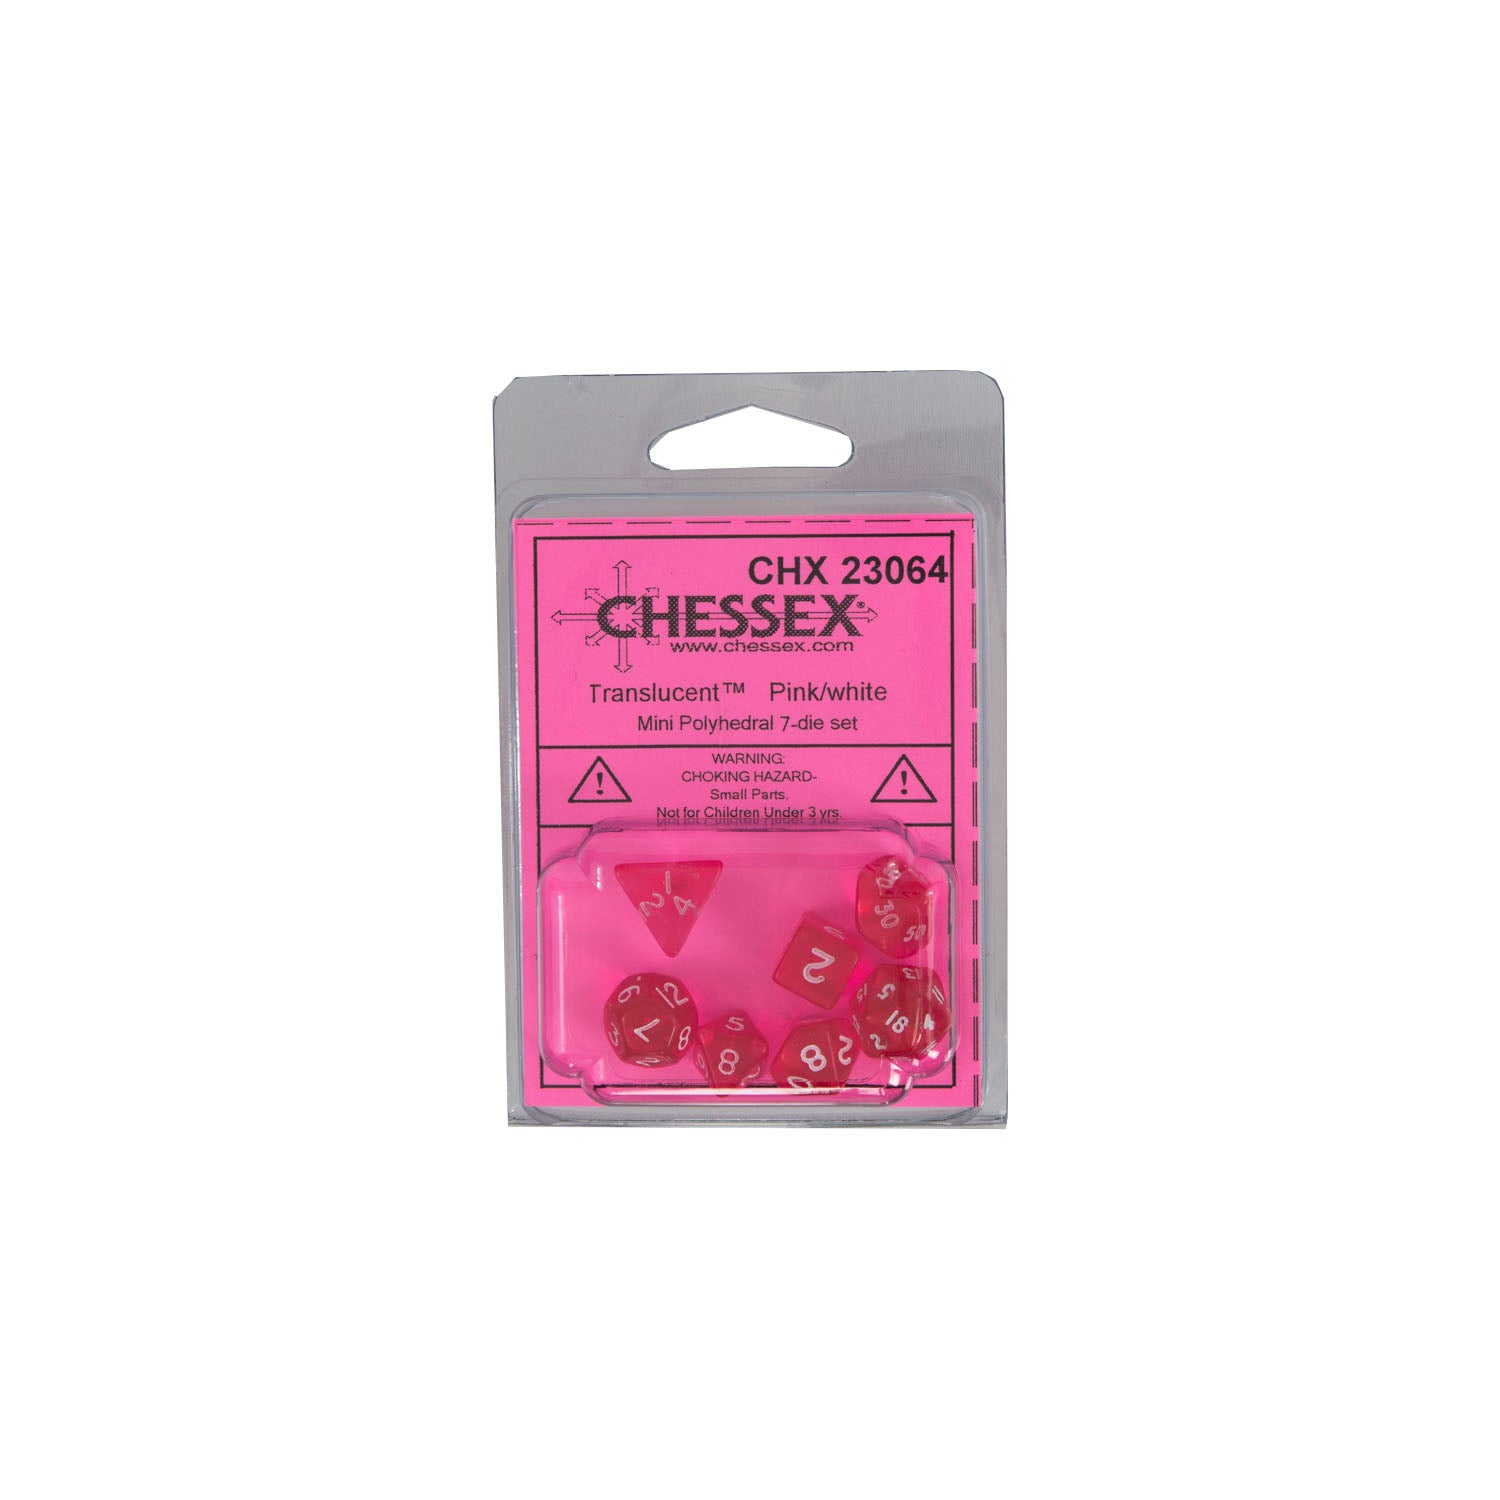 Chessex CHX23064 Mini Pink w/ white Translucent Polyhedral Dice Set